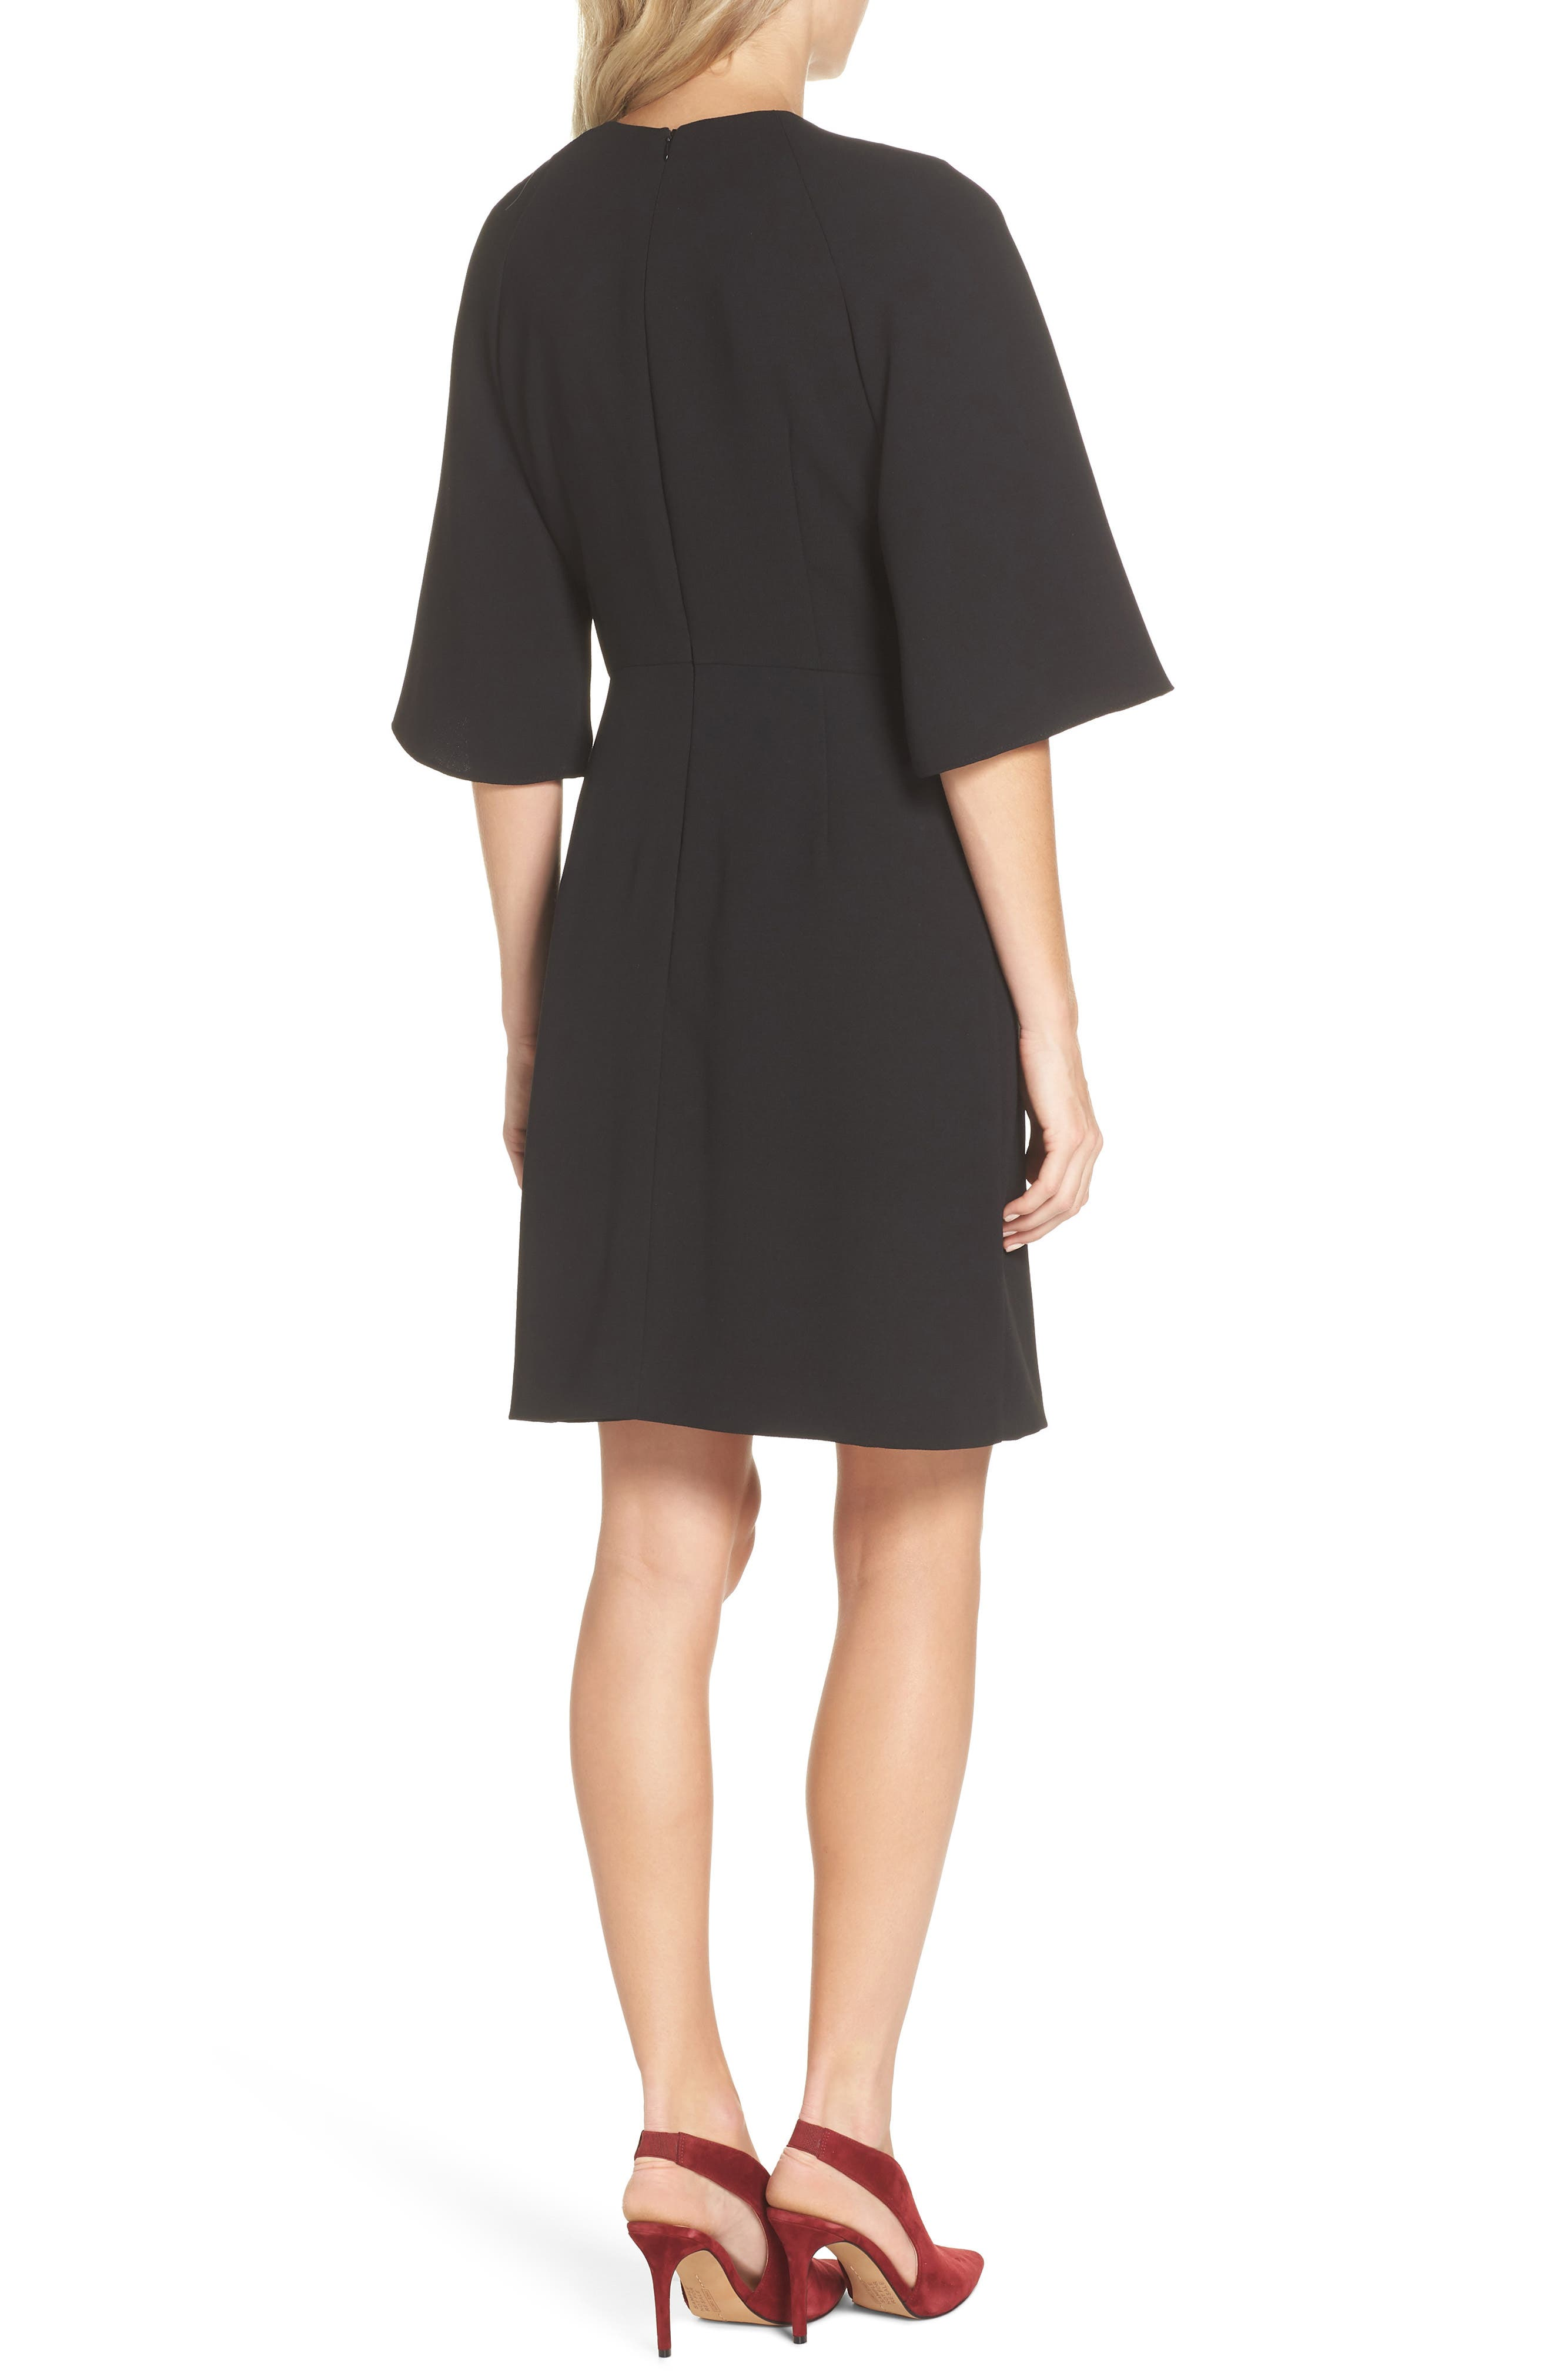 TAHARI, Tie Front Crepe Sheath Dress, Alternate thumbnail 2, color, BLACK